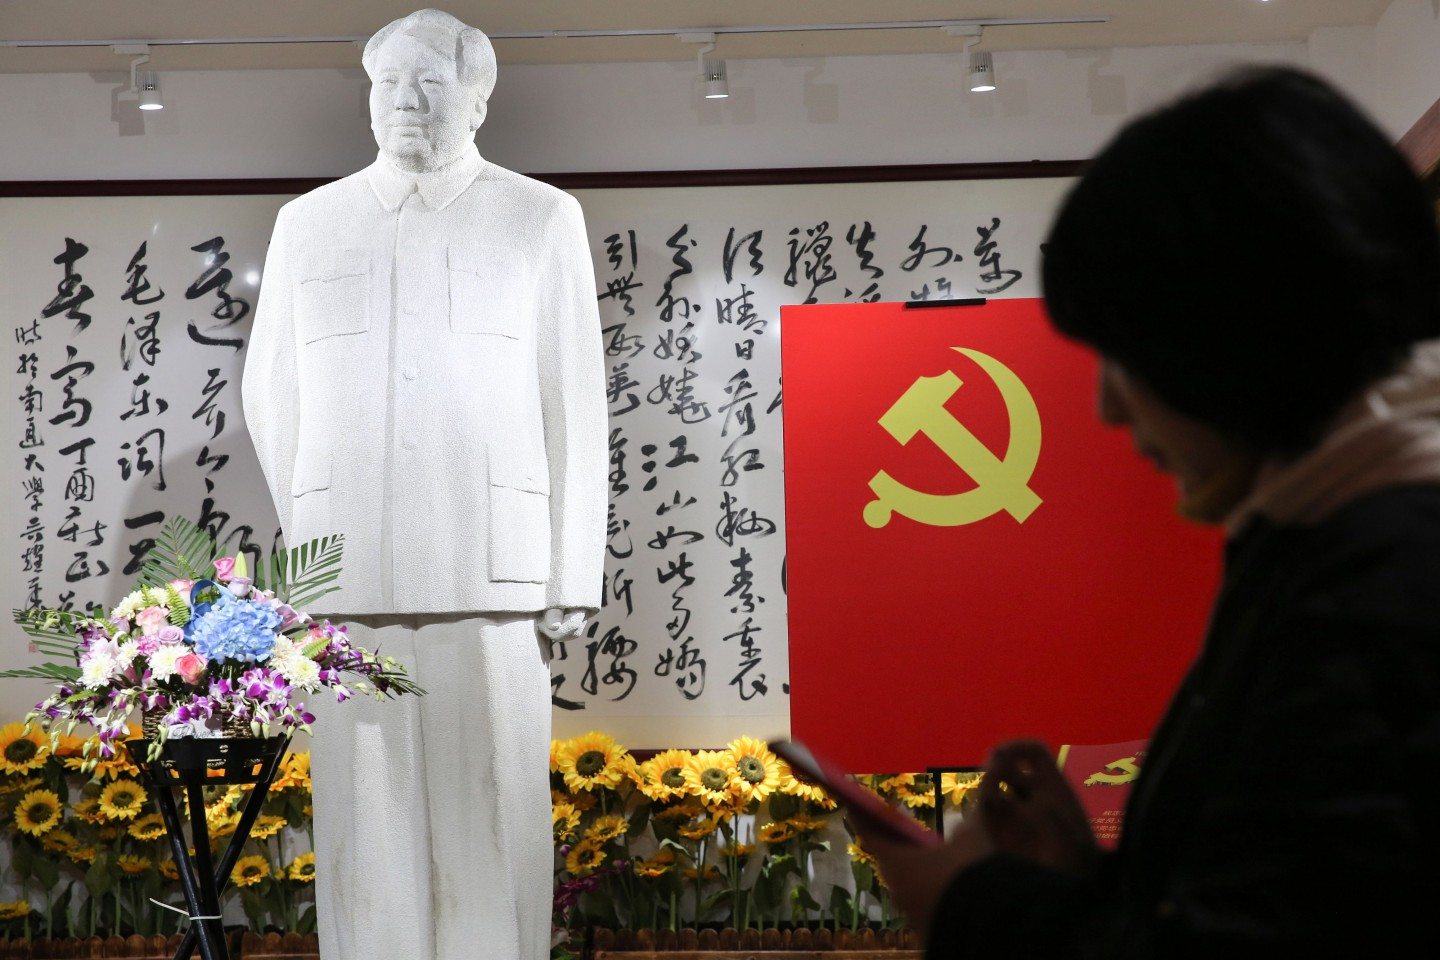 China is shaped by the secular religion of communism. In this photo taaken on 26 December 2019, people visit a museum of artworks of the late former Chinese Communist Party leader Mao Zedong to mark his 126th birthday, in Nantong, Jiangsu. (STR/AFP)